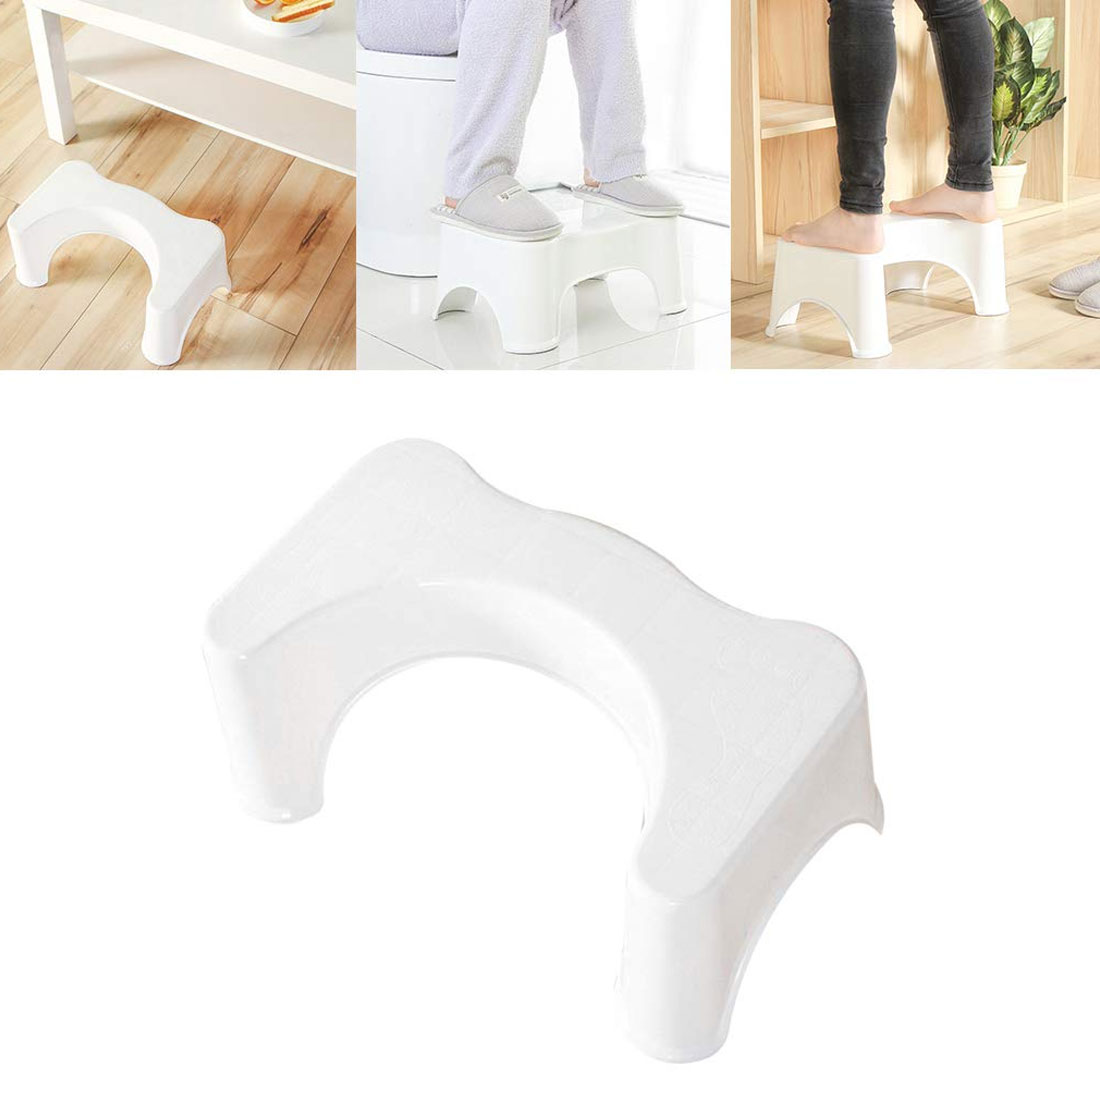 bathroom-set-u-shaped-toilet-stool-bathroom-non-slip-stool-helper-assistant-foot-seat-squatting-children-pregnant-footstool